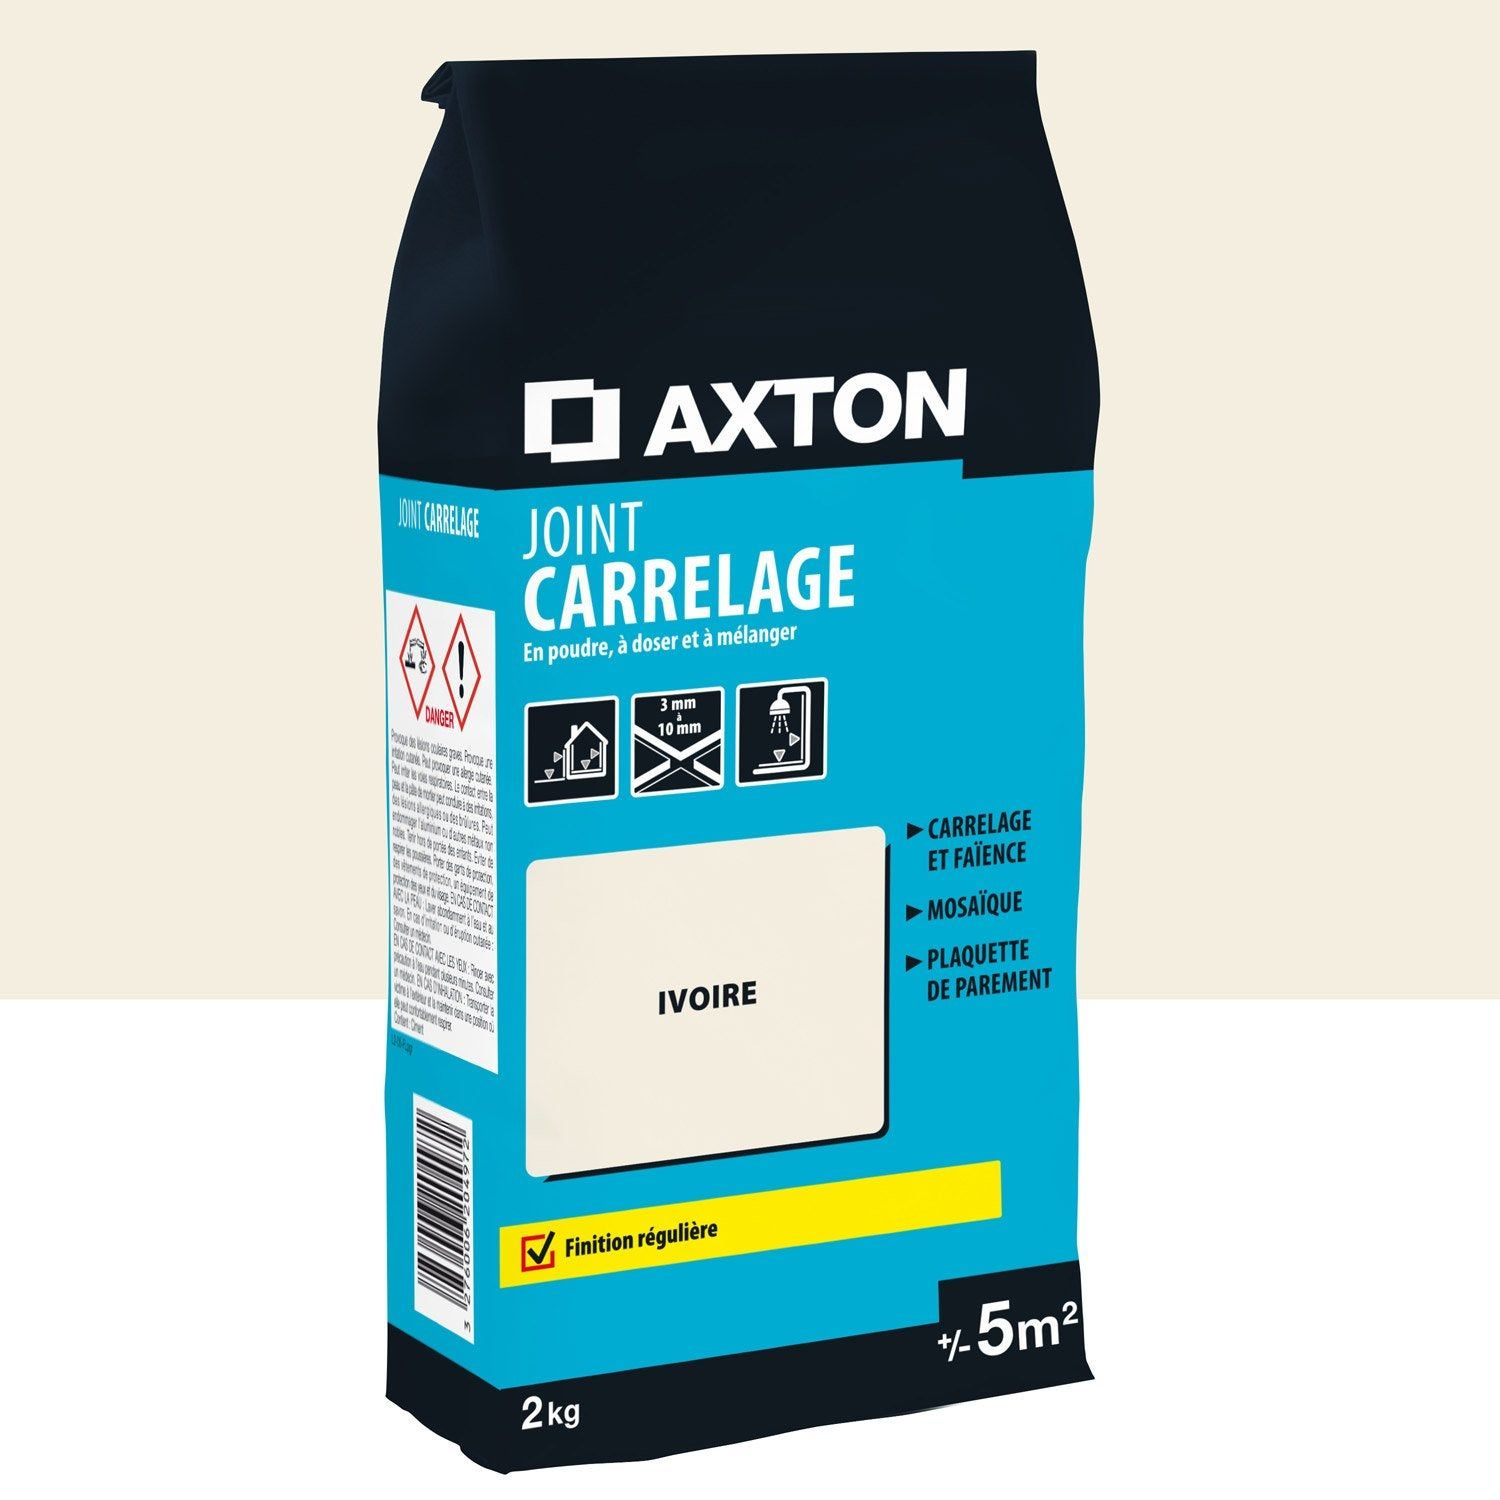 Joint Poudre Axton Axton Joint Carrelage Ivoire 5m² Poudre